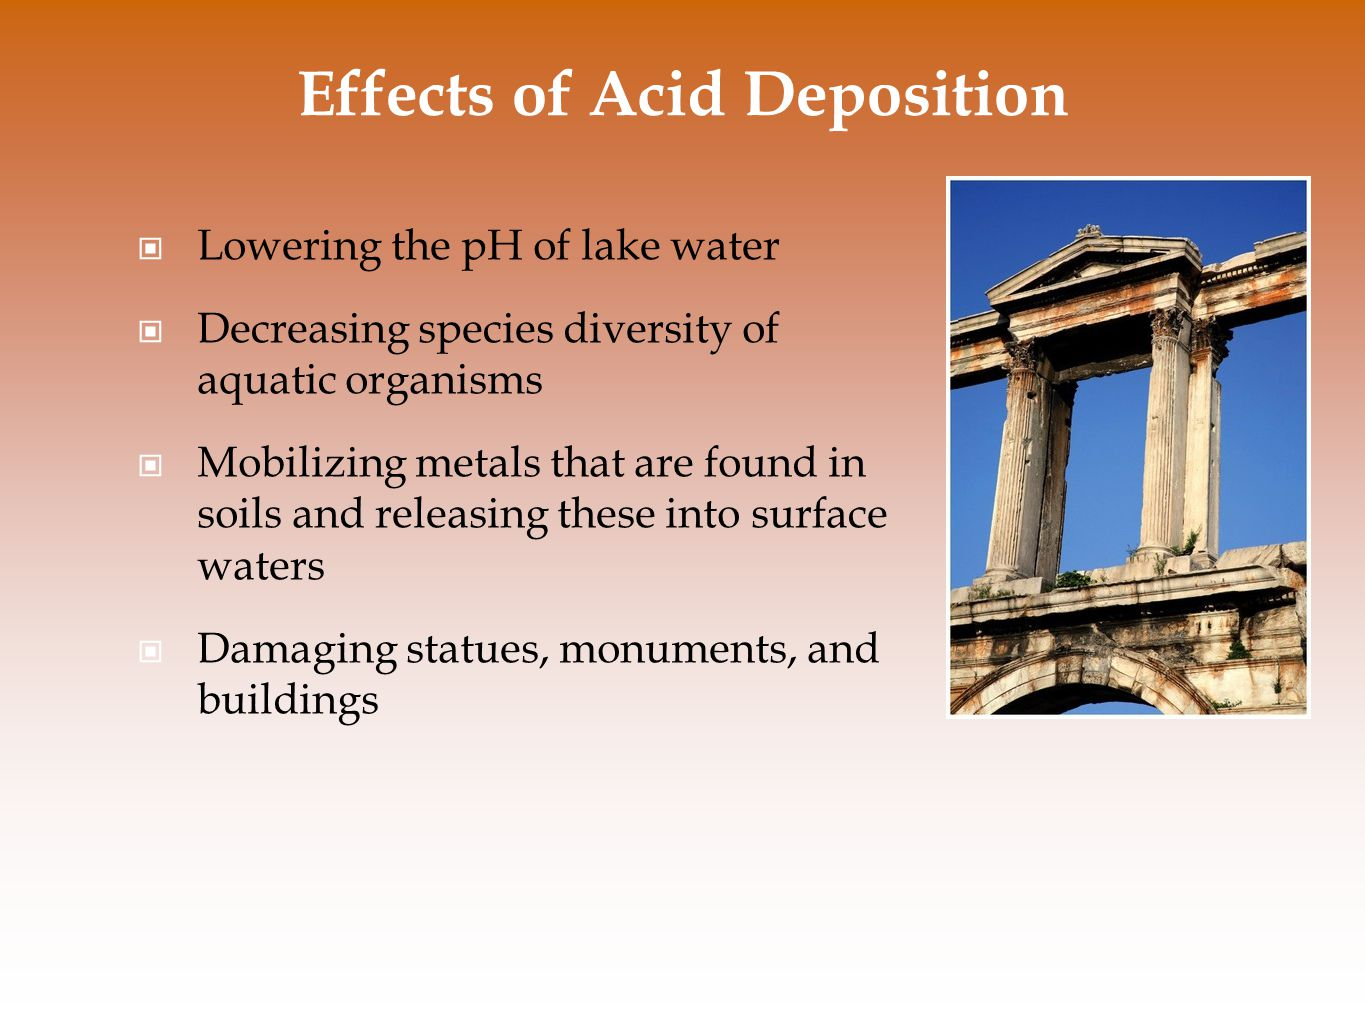 Effects of Acid Deposition